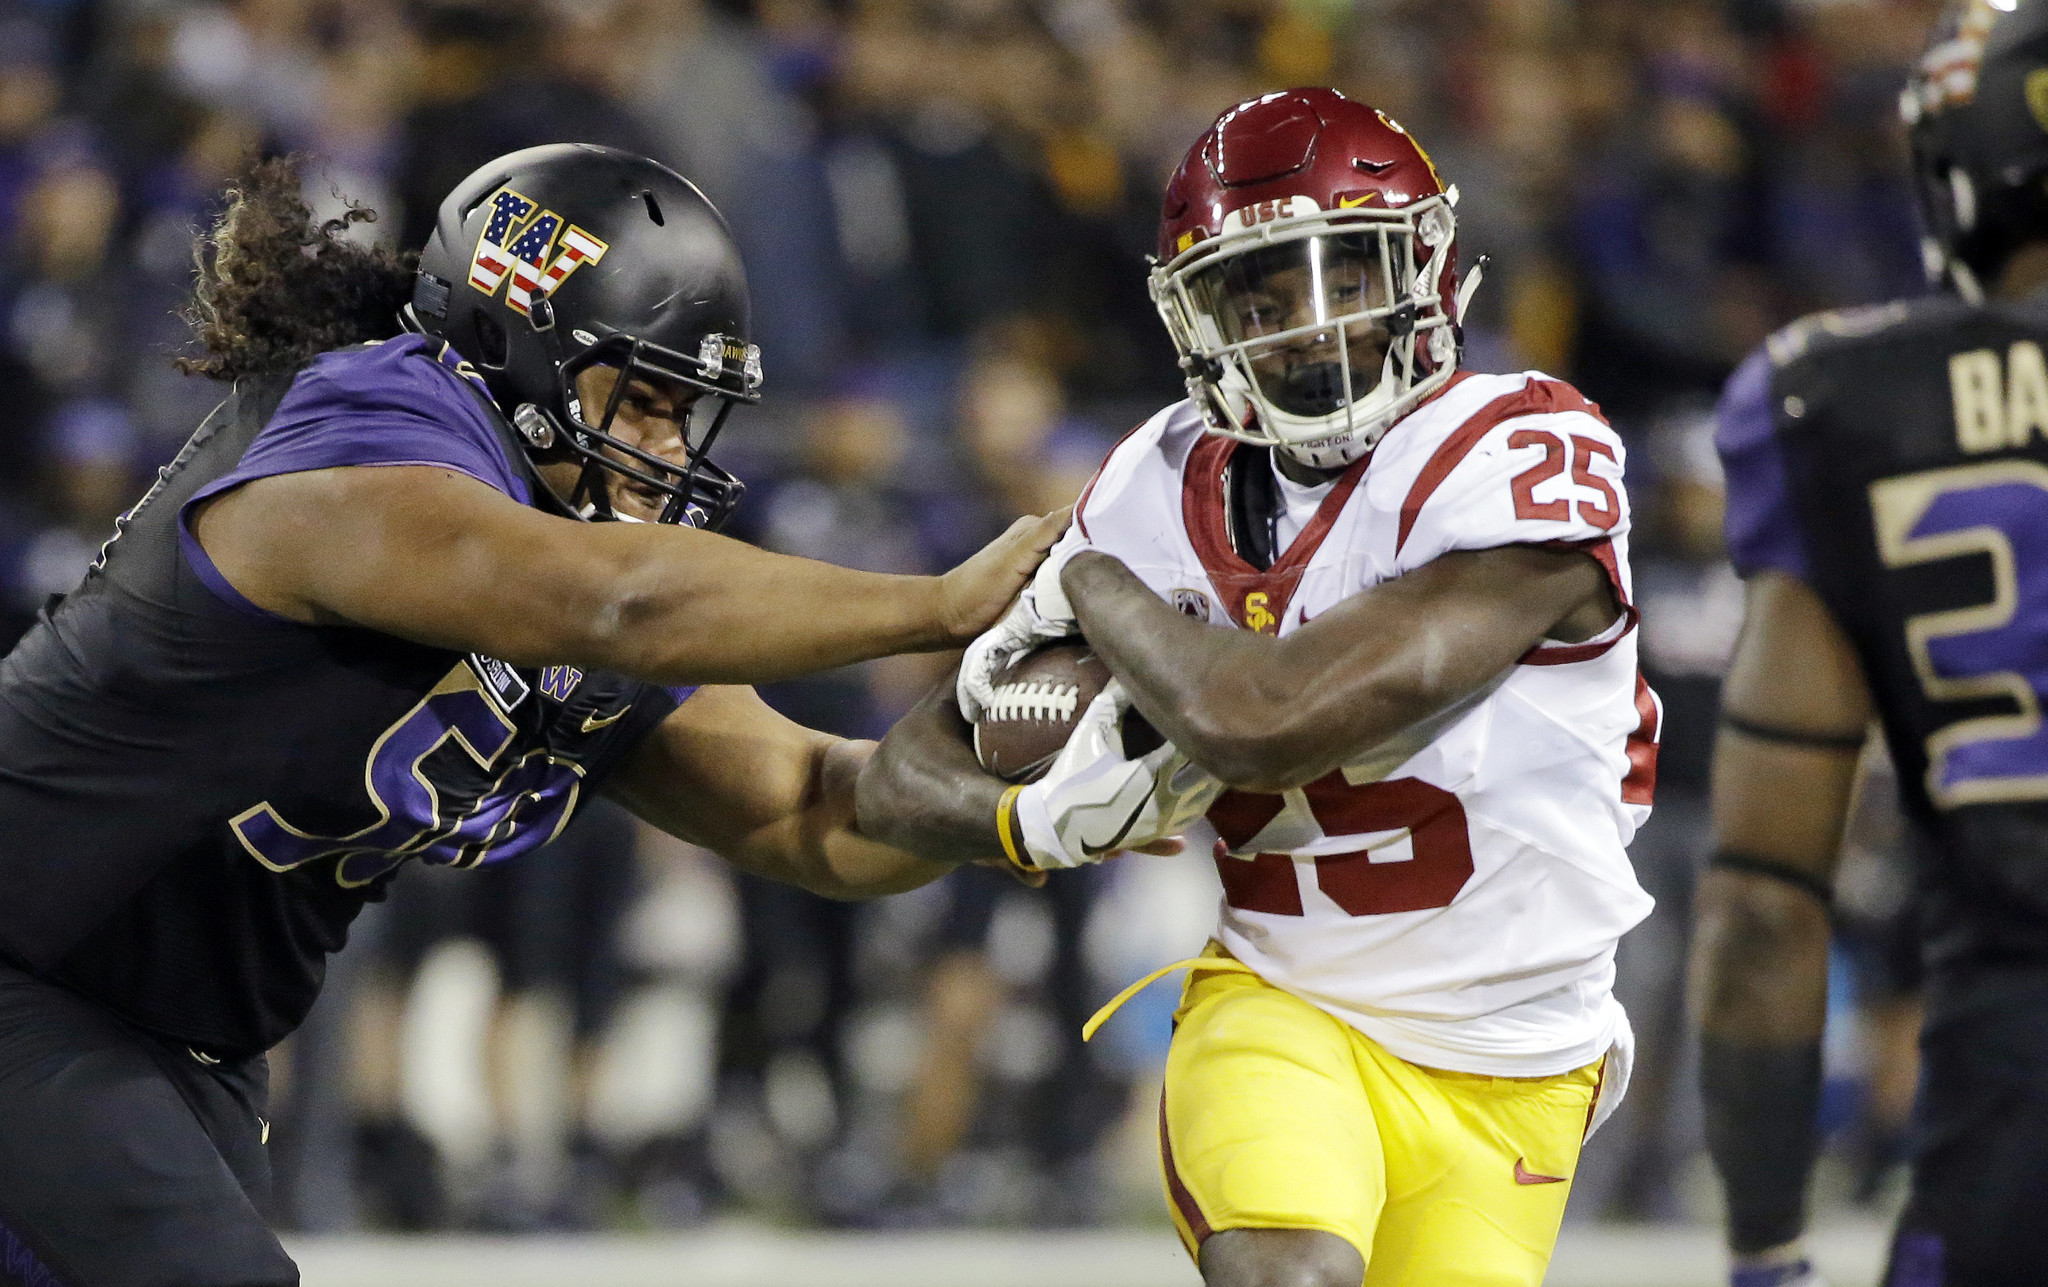 No 20 Usc Plays The Spoiler Upsets No 4 Washington 26 13 Sun Sentinel